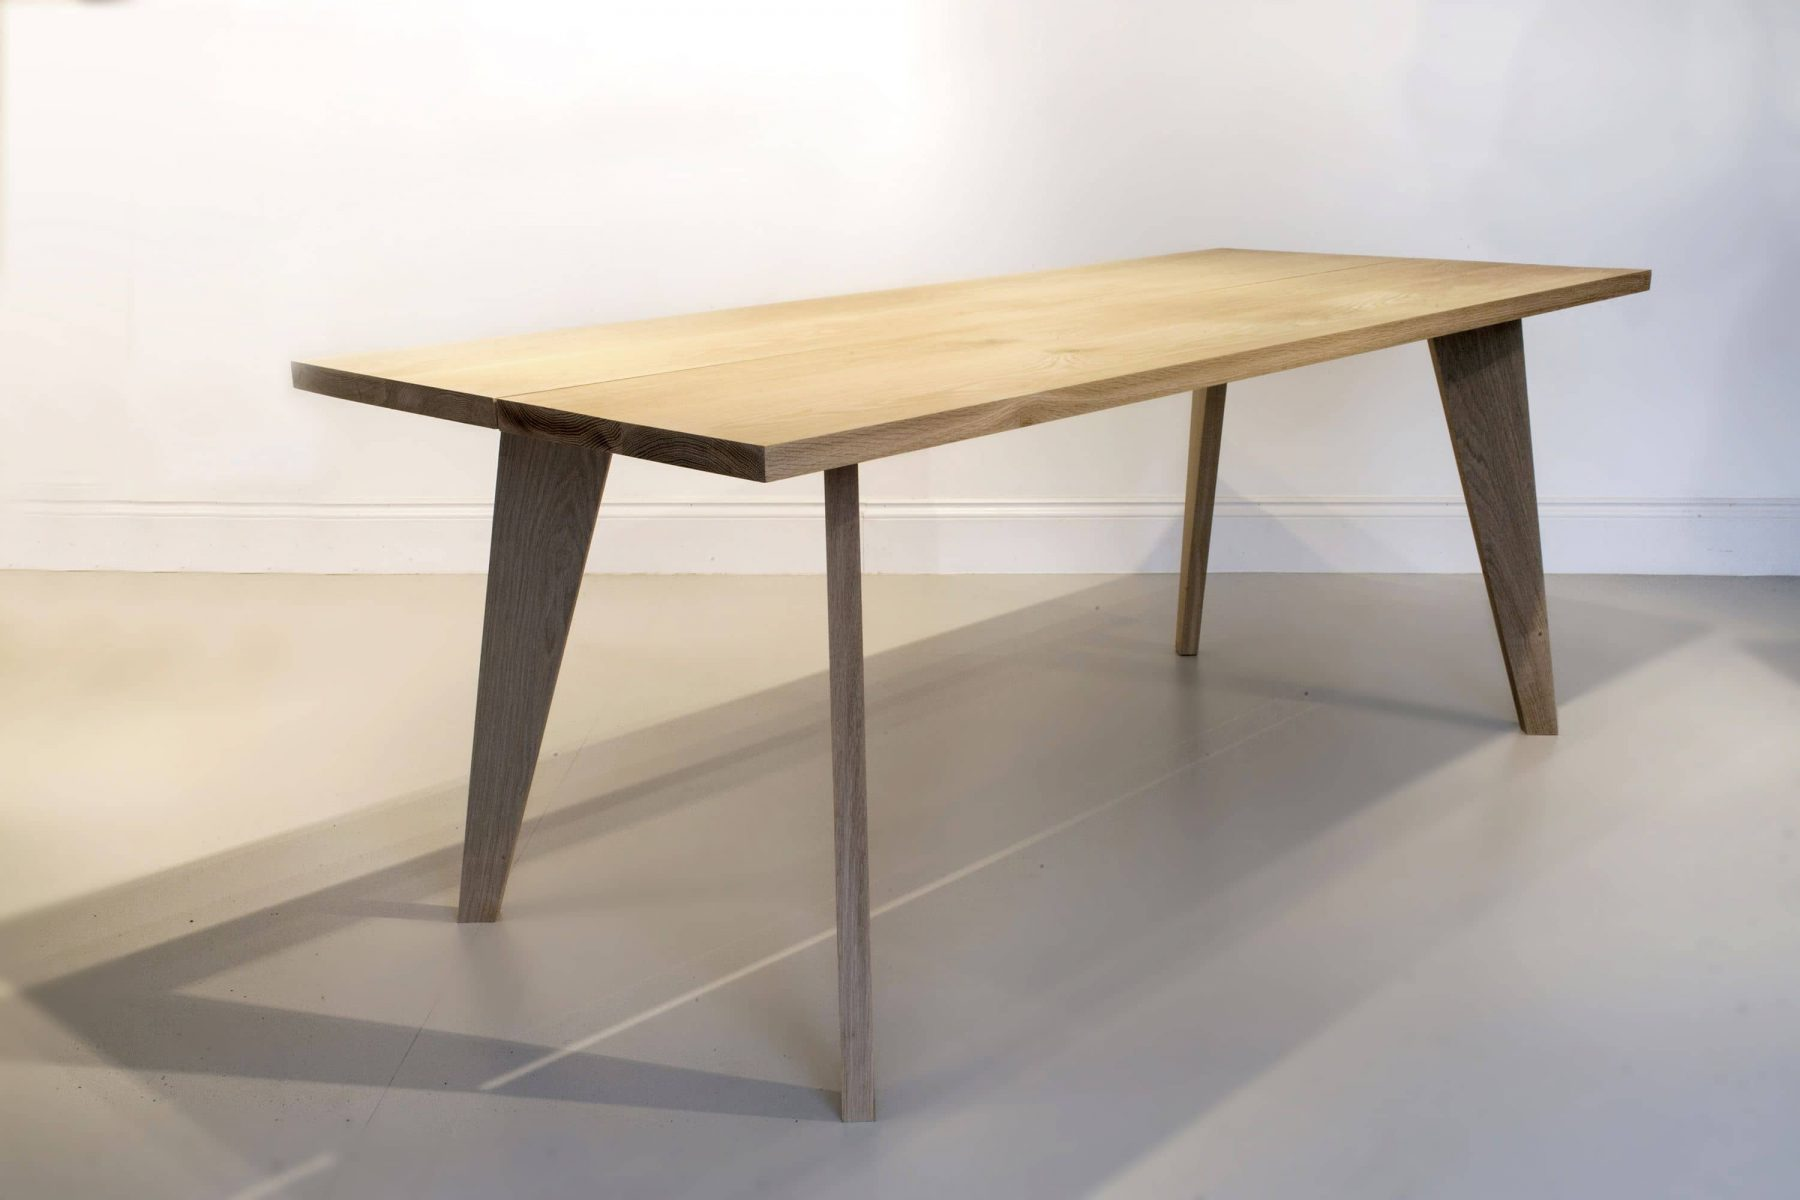 Wooden dining table with tapered legs